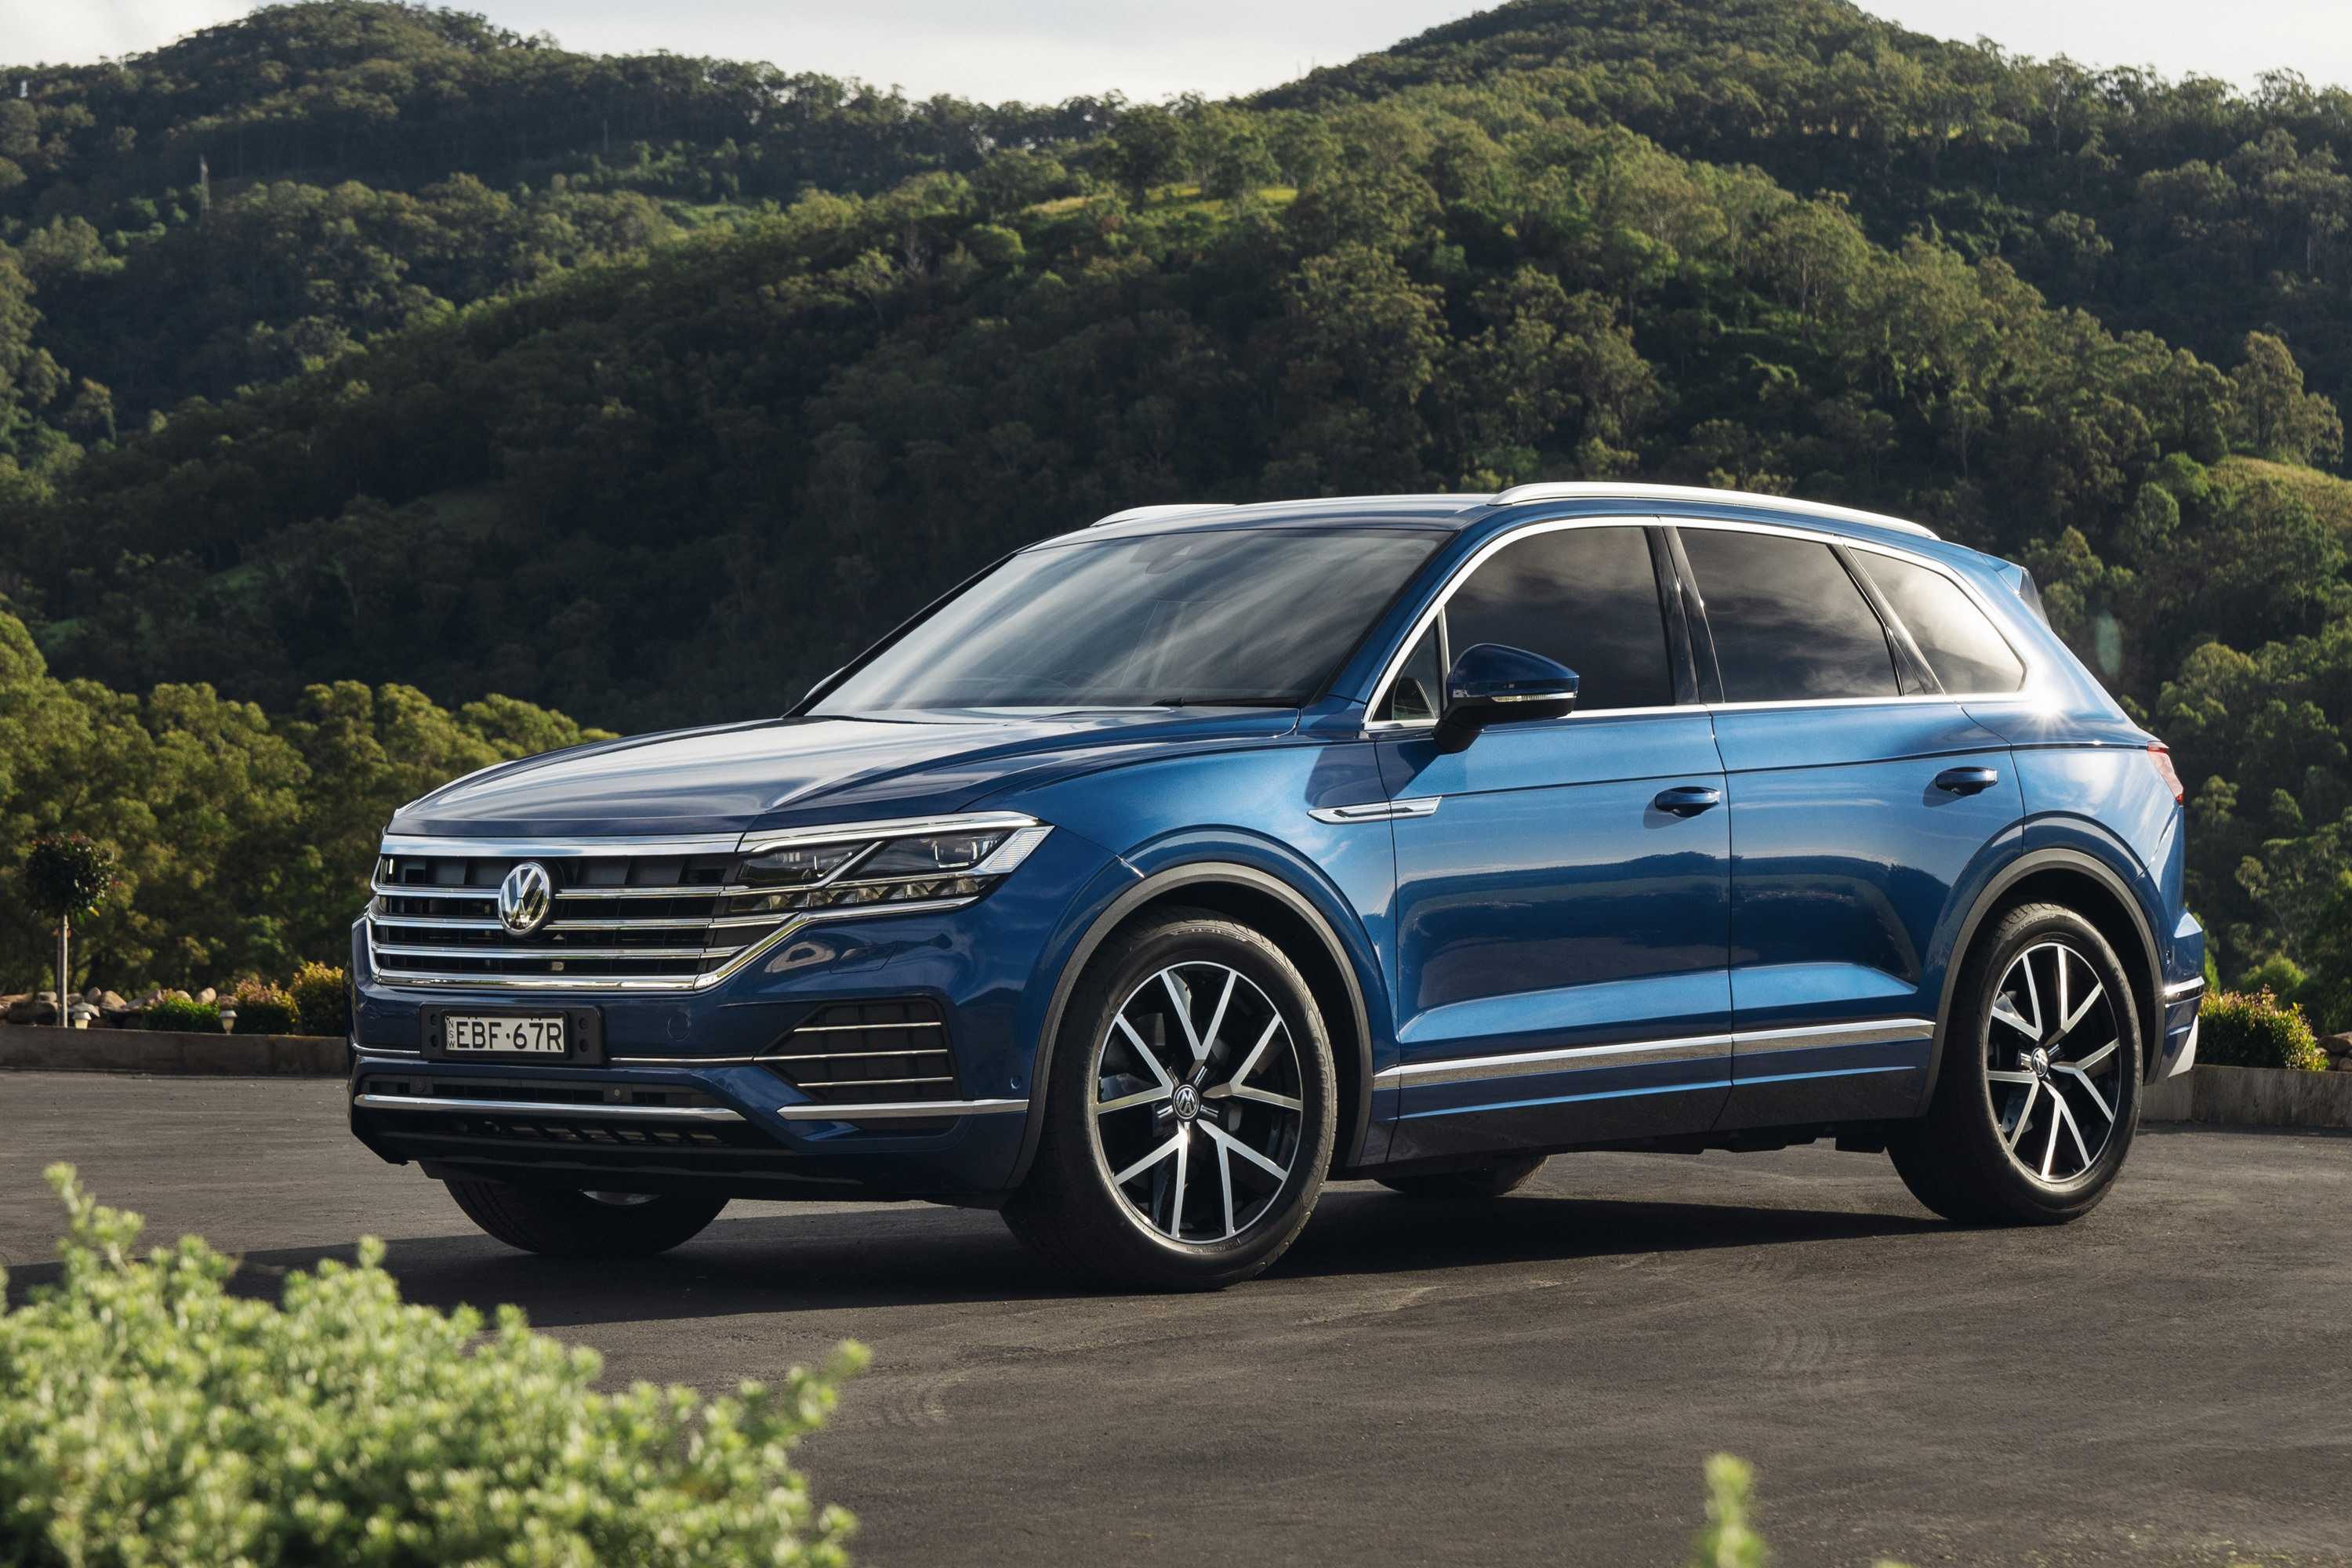 2019 VW Touareg Launch Edition 20 fit for purpose